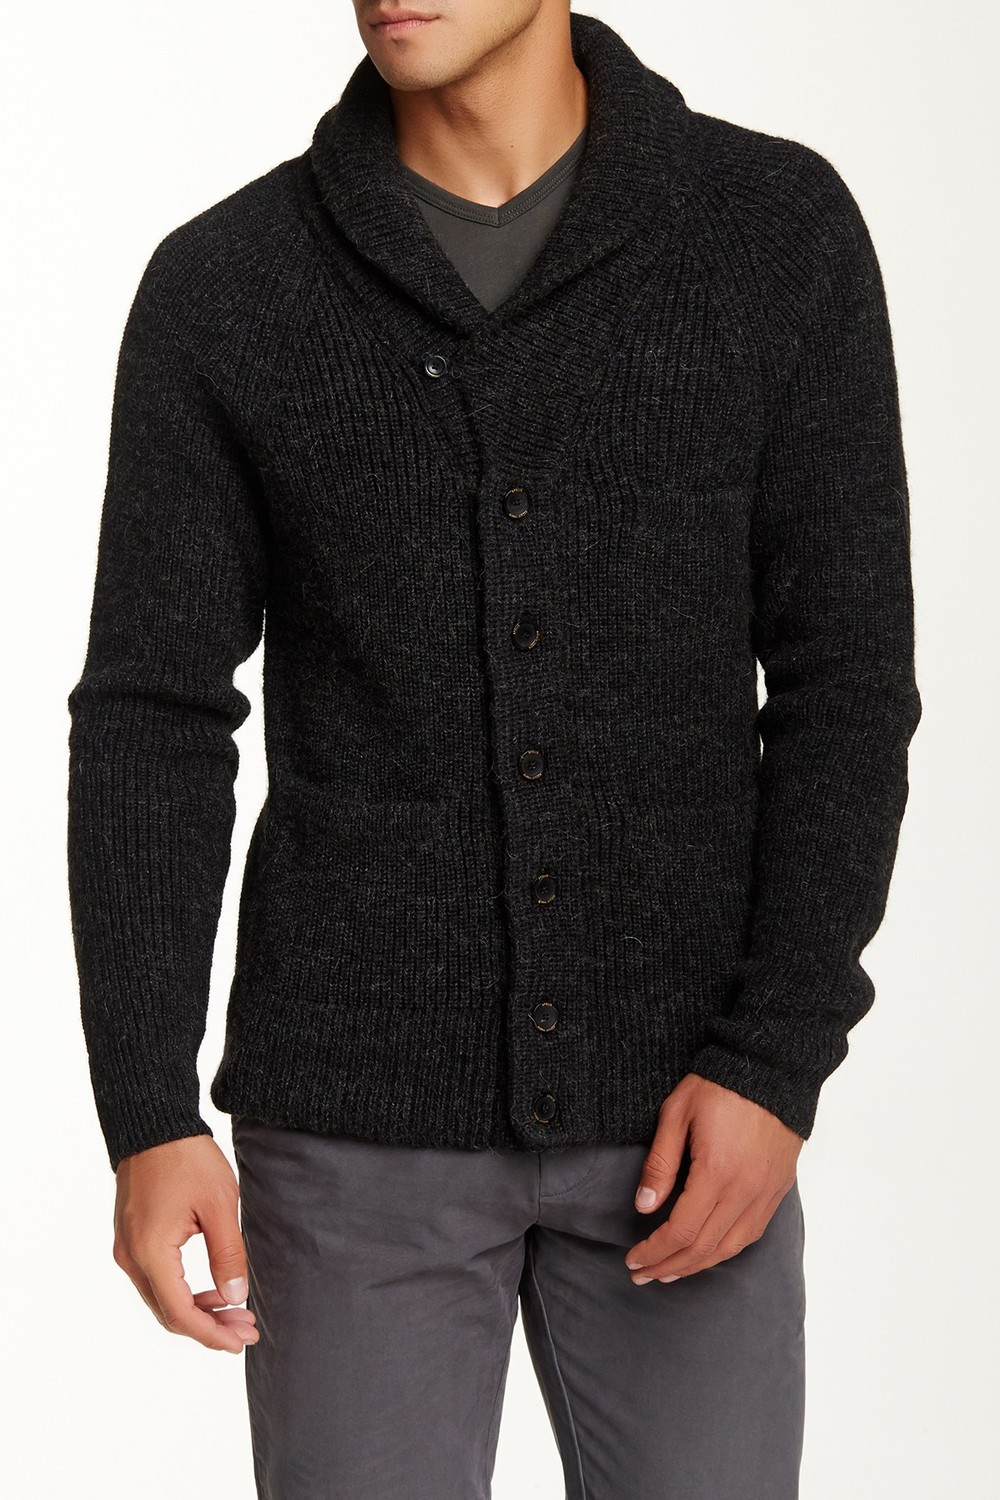 Apolis Cardigan Sweater with Elbow Patches. Nordstrom Rack. Was: $324 Now: $129.